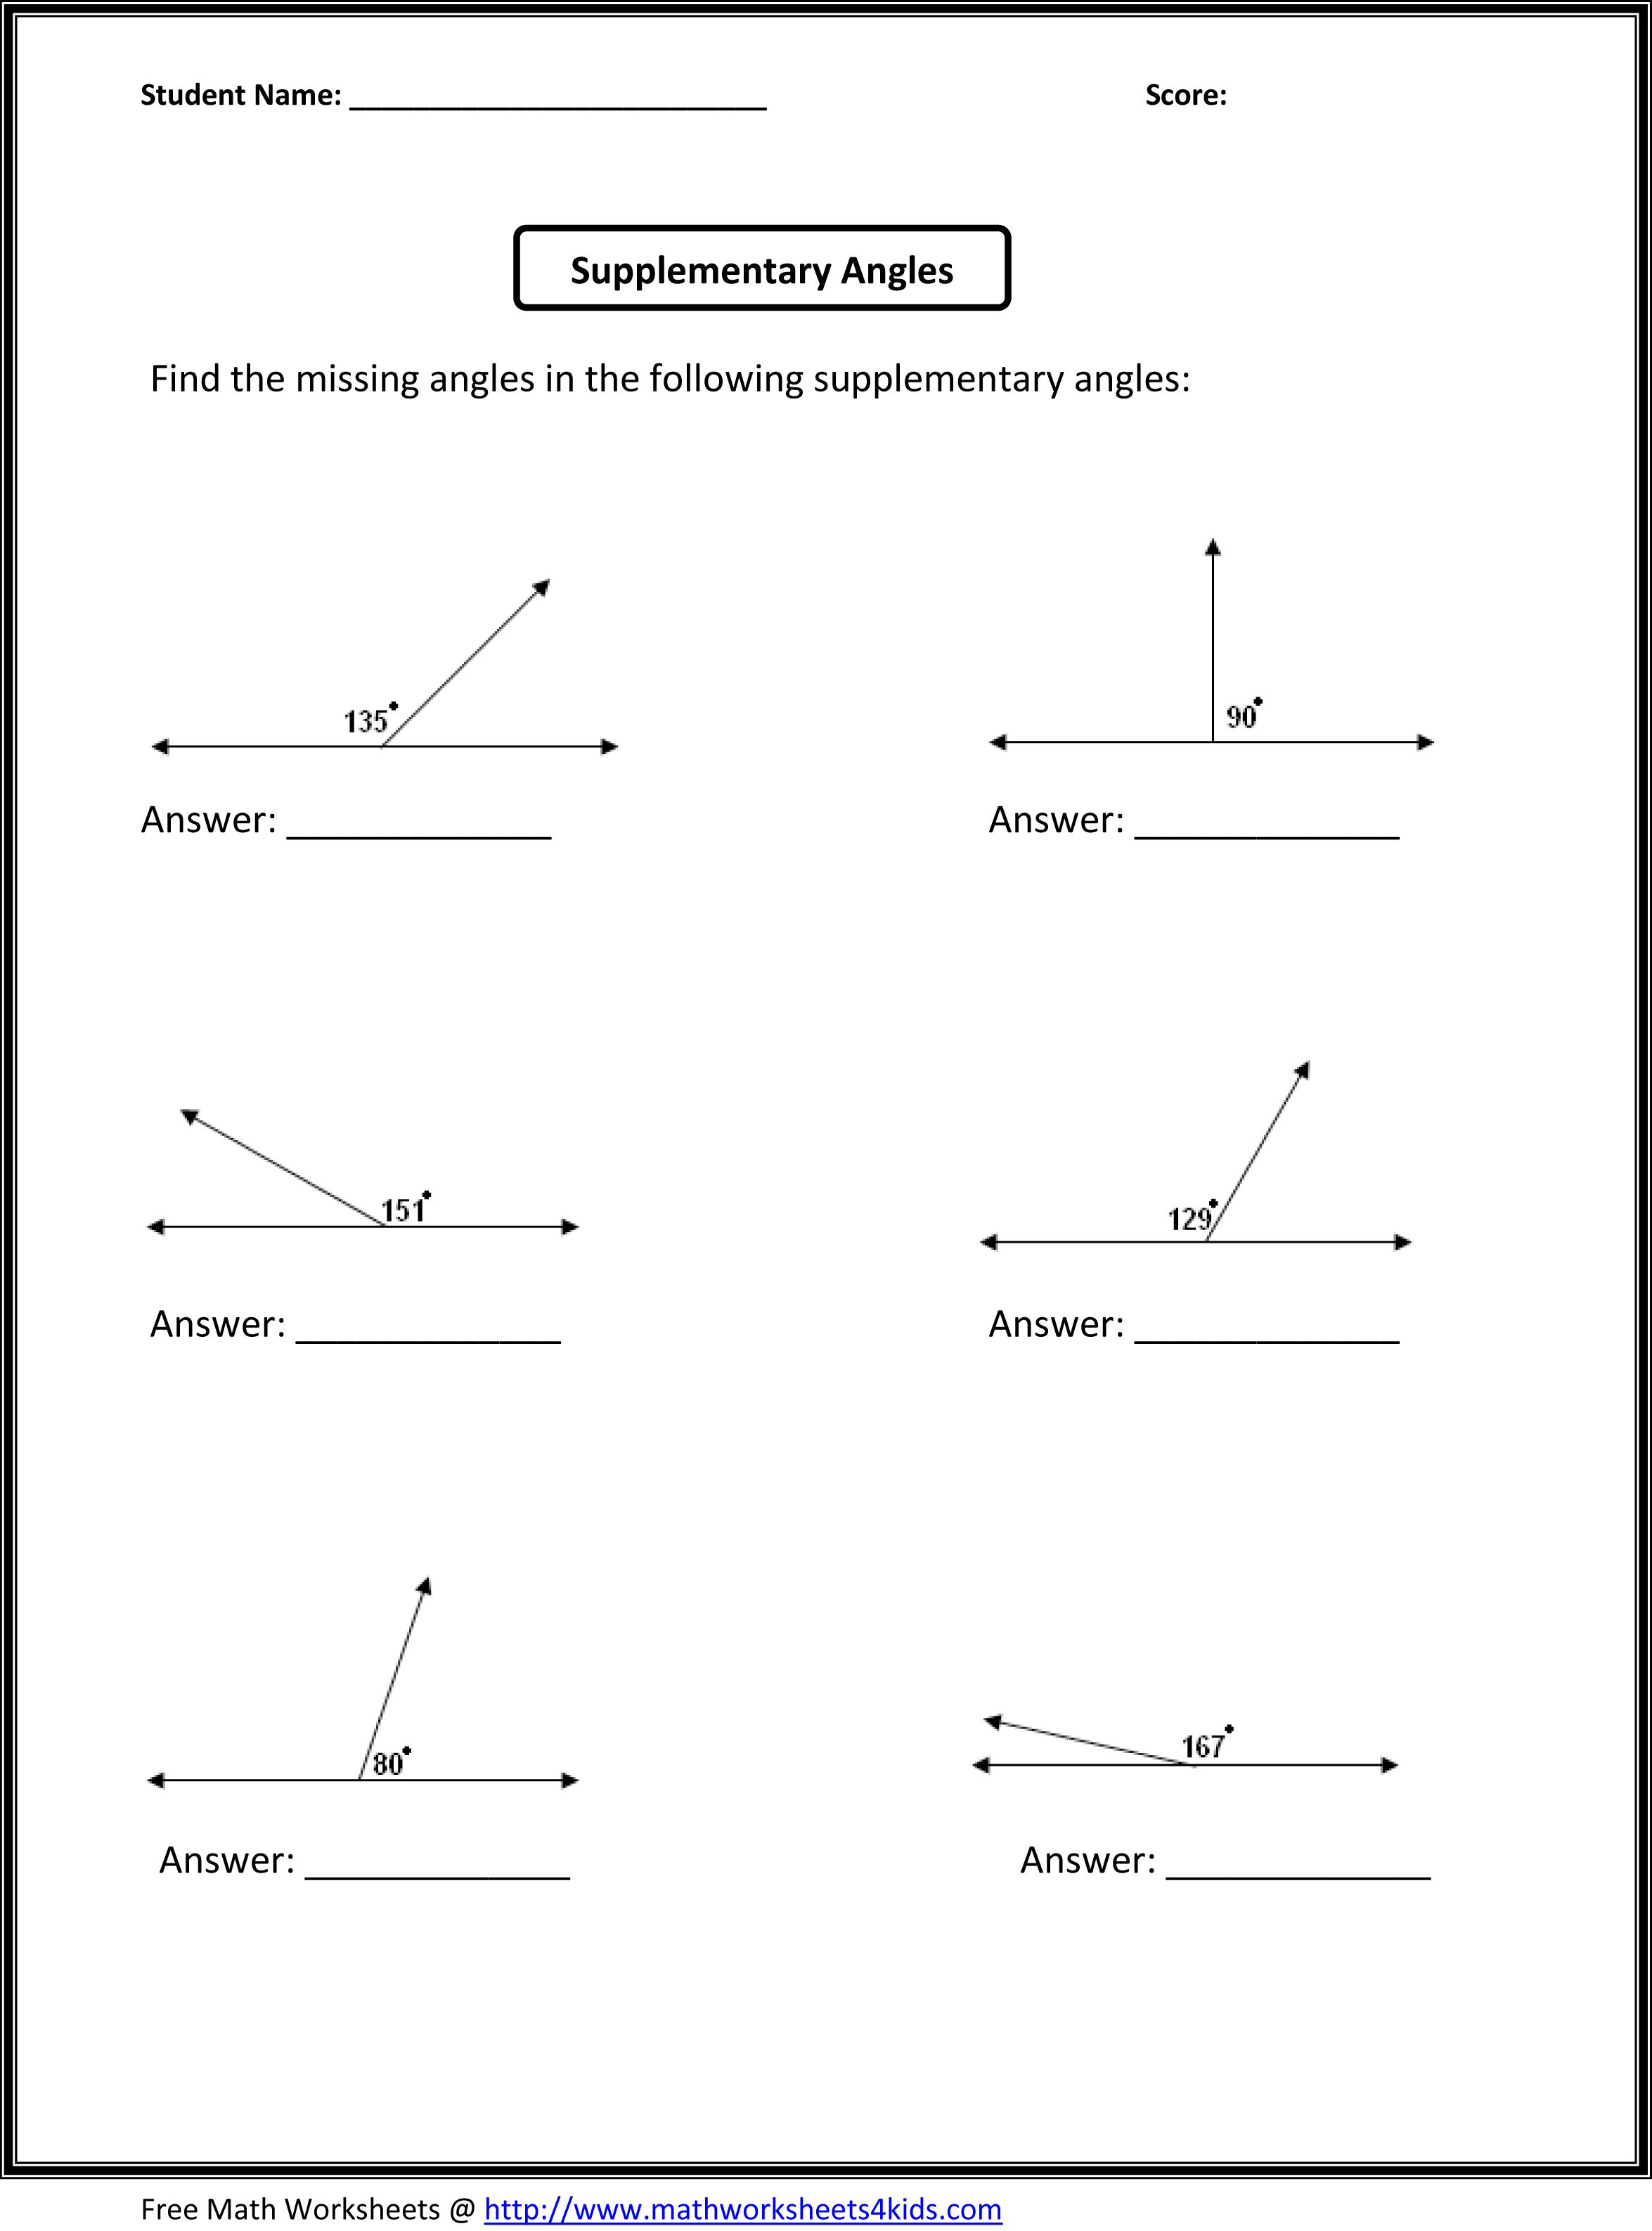 Worksheets Geometry Worksheets Pdf supplementary angles classroom madness pinterest math worksheets and math